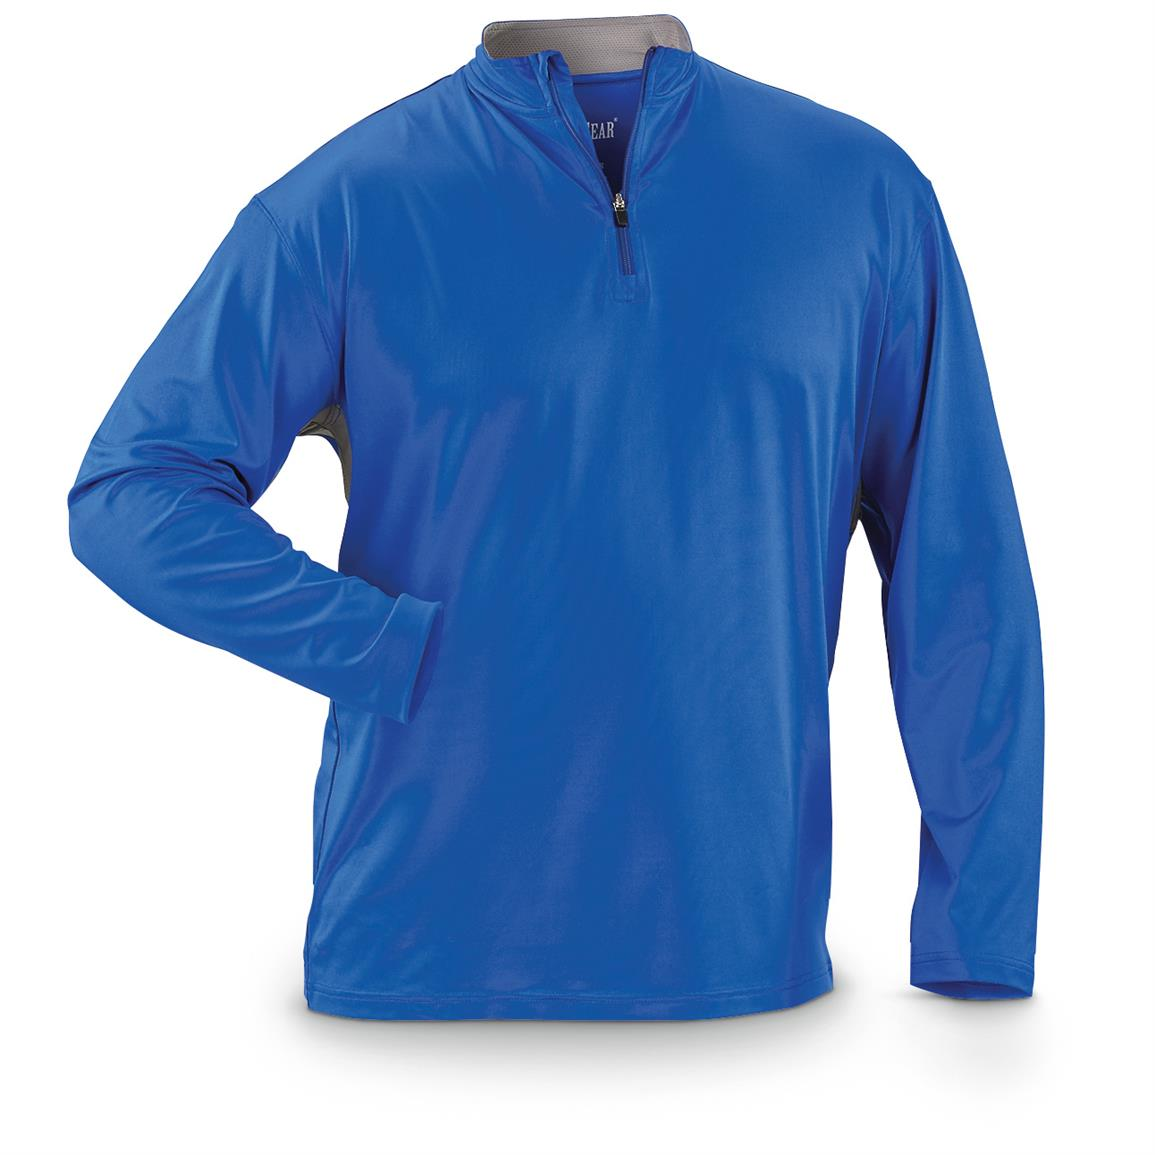 Guide Gear Men's Performance Fishing Pullover Quarter Zip Shirt, Deep Sea Blue